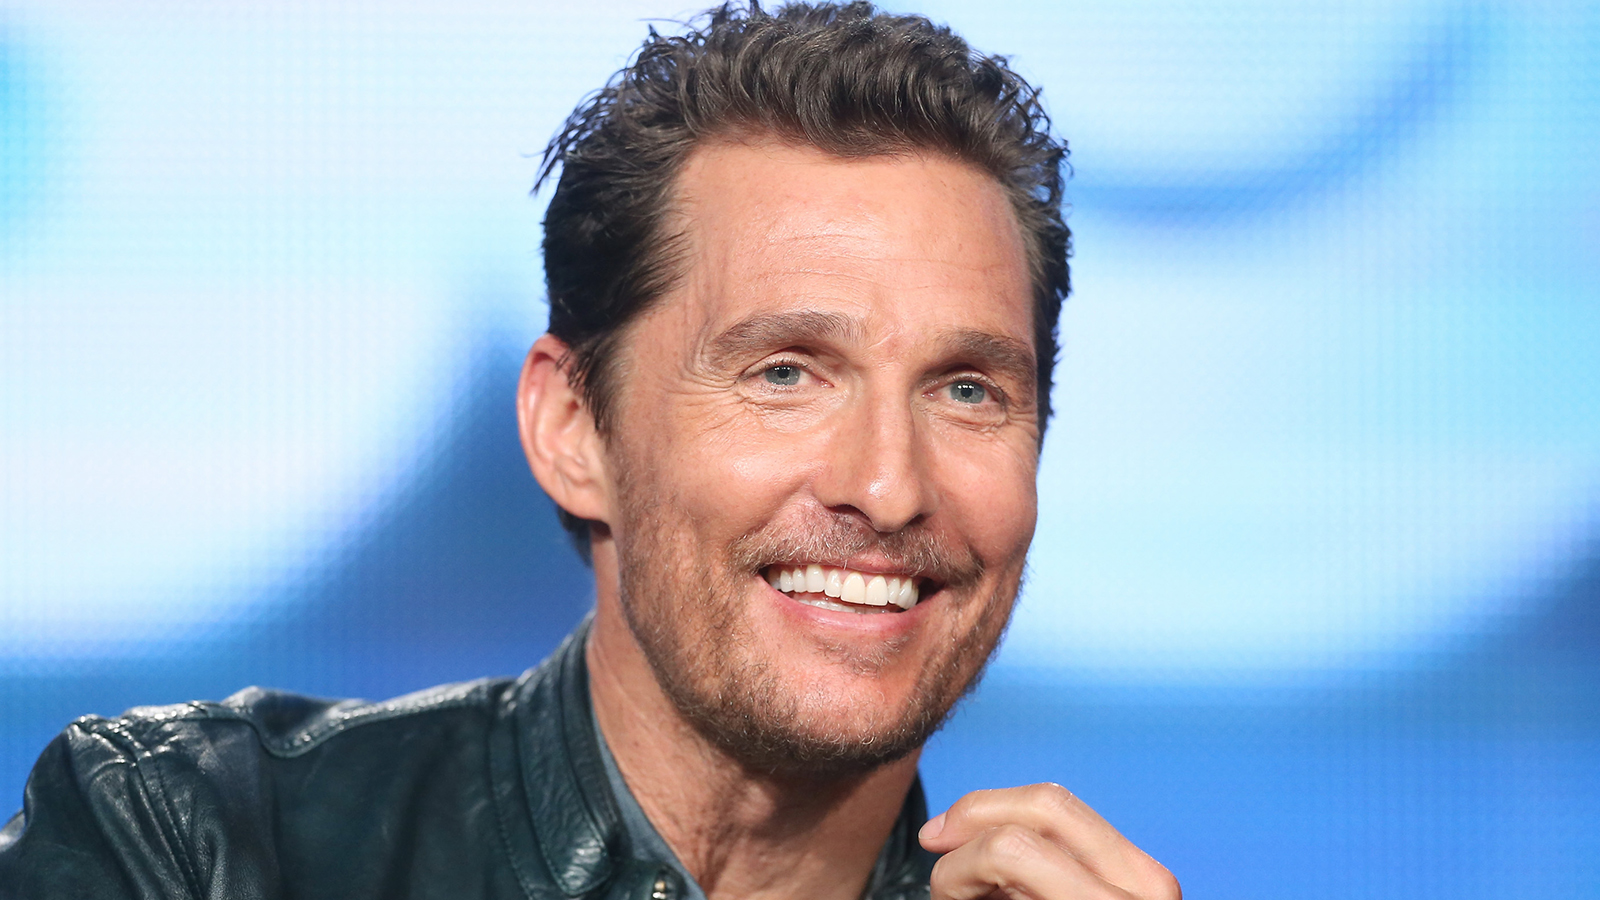 Link activation Roku to watch Mathew McConaughey movies binge on Roku TV